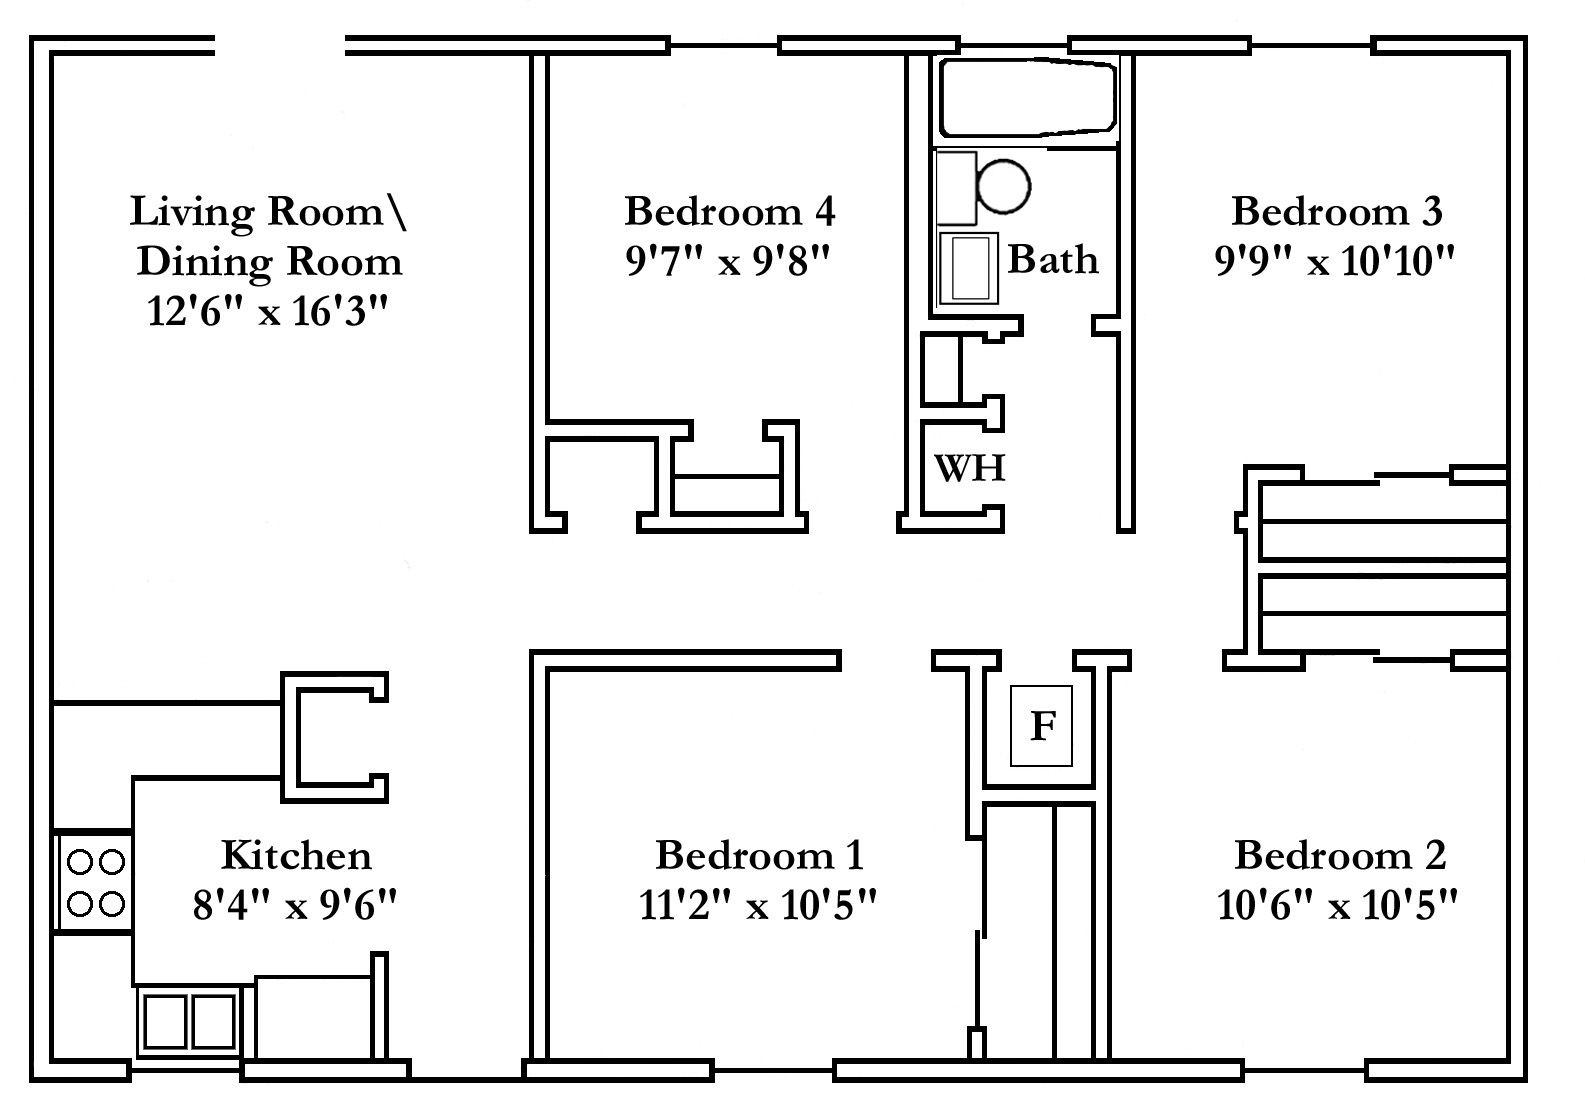 Small bedroom House Plans Free   Typical Floor Plans   Powering    Small bedroom House Plans Free   Typical Floor Plans   Powering Silicon Valley   San Jose State bed   Heart is where you Homestead    Pinterest